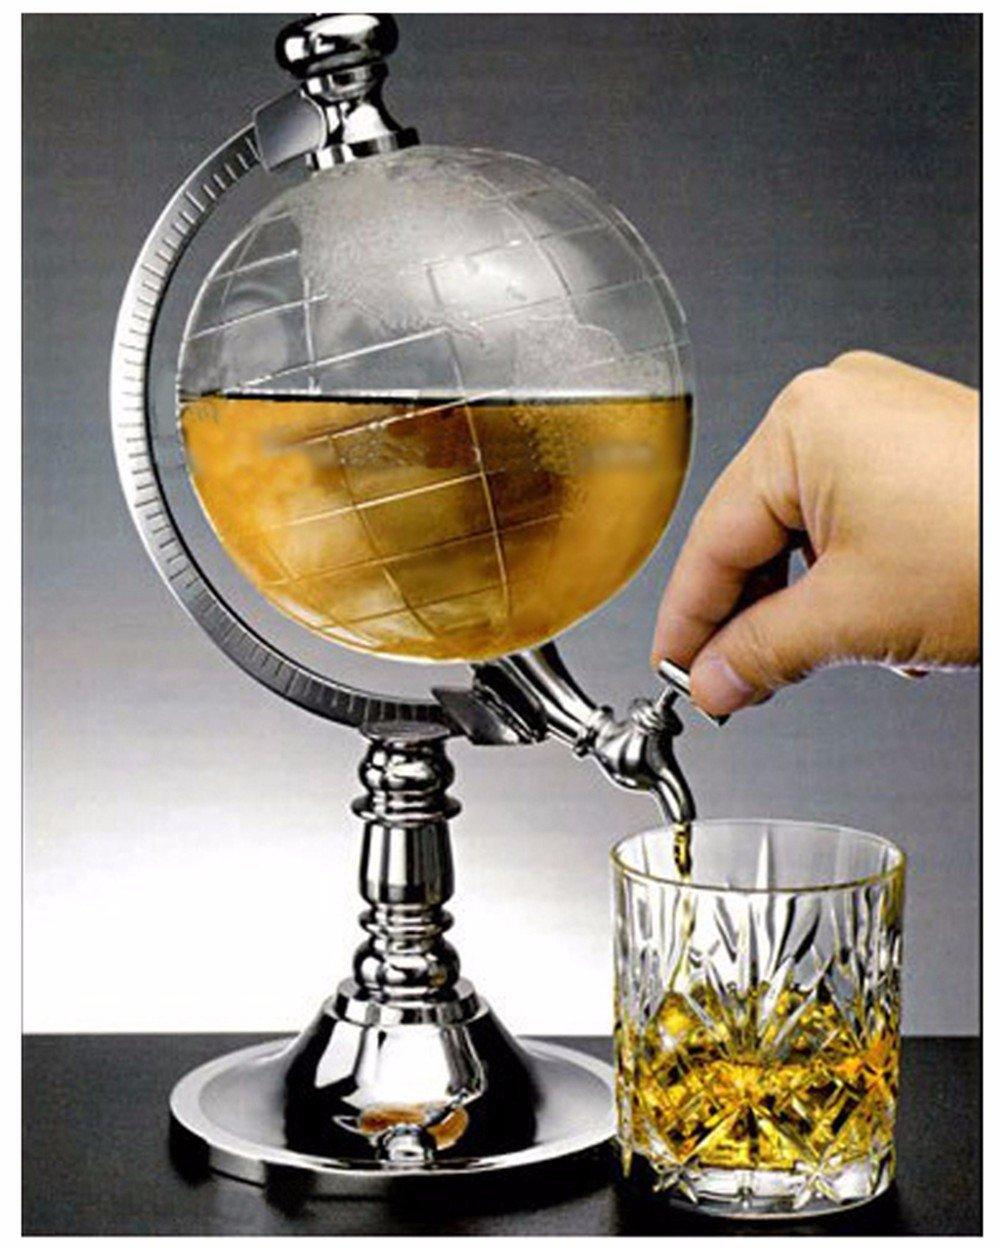 1492 Vintage Behaim Whiskey Globe Dispenser